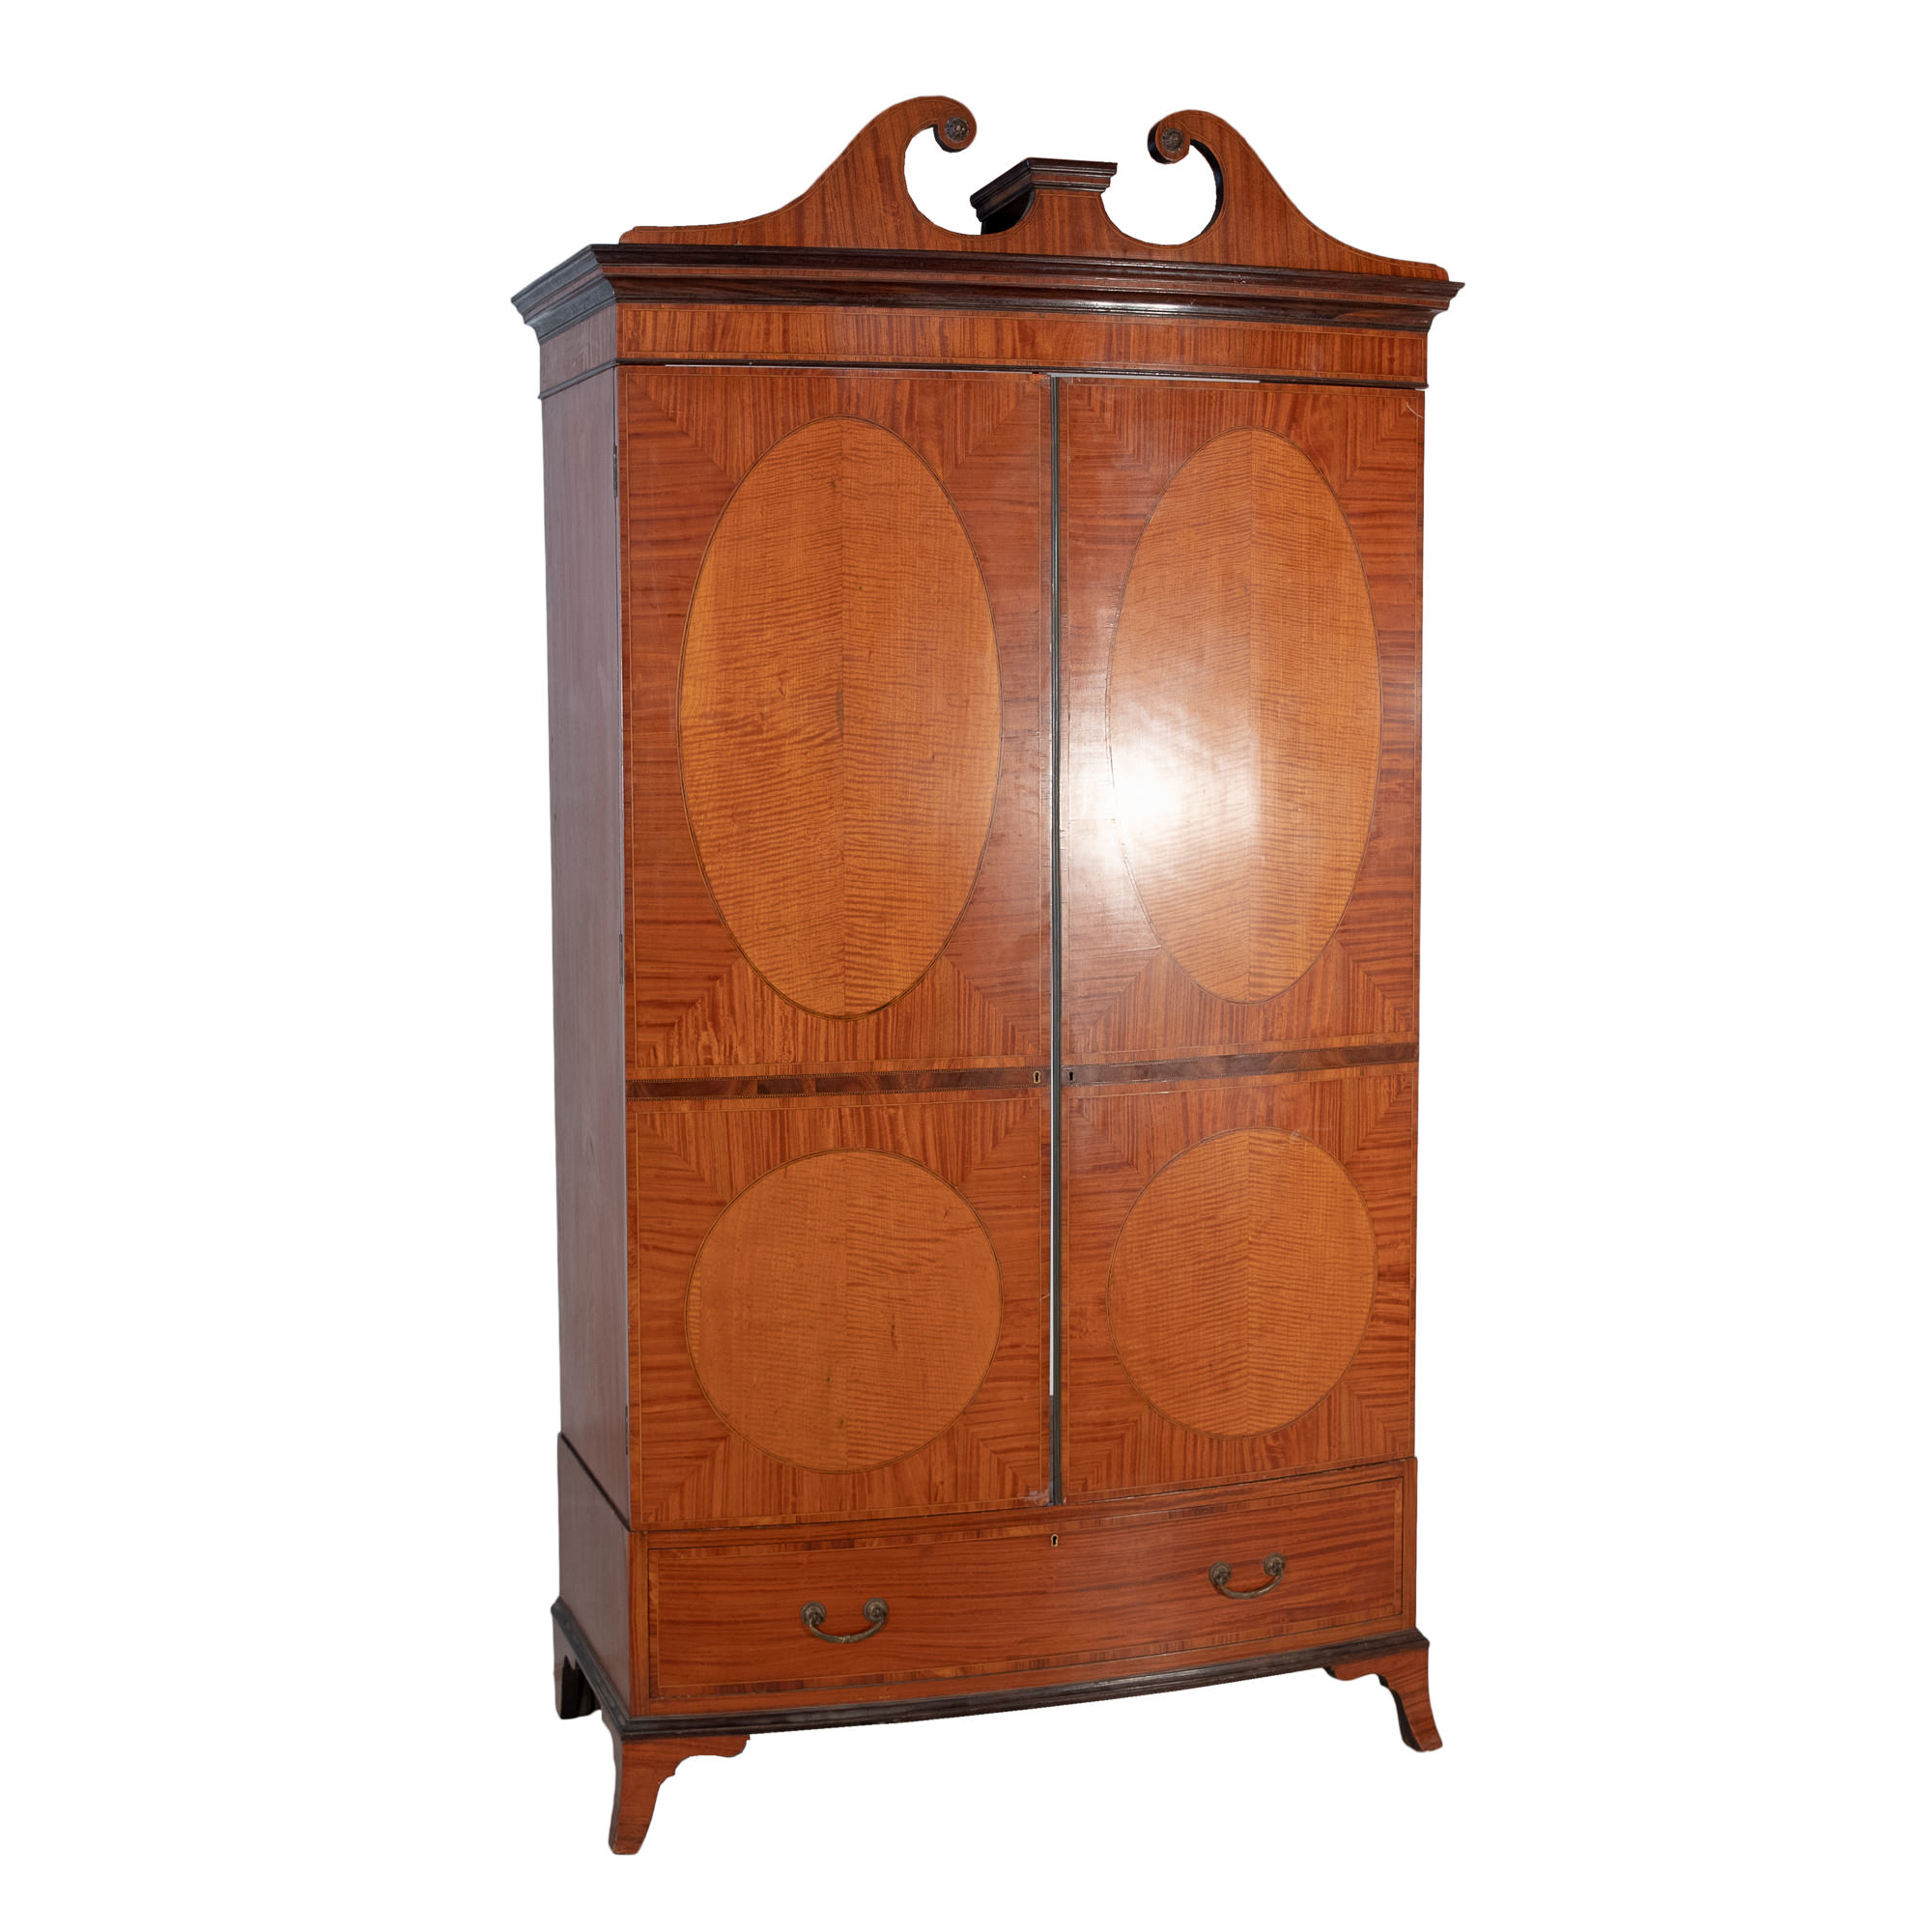 'Regency Style Crossbanded Satinwood and Walnut Bowfront Linen Press Late 19th Century'